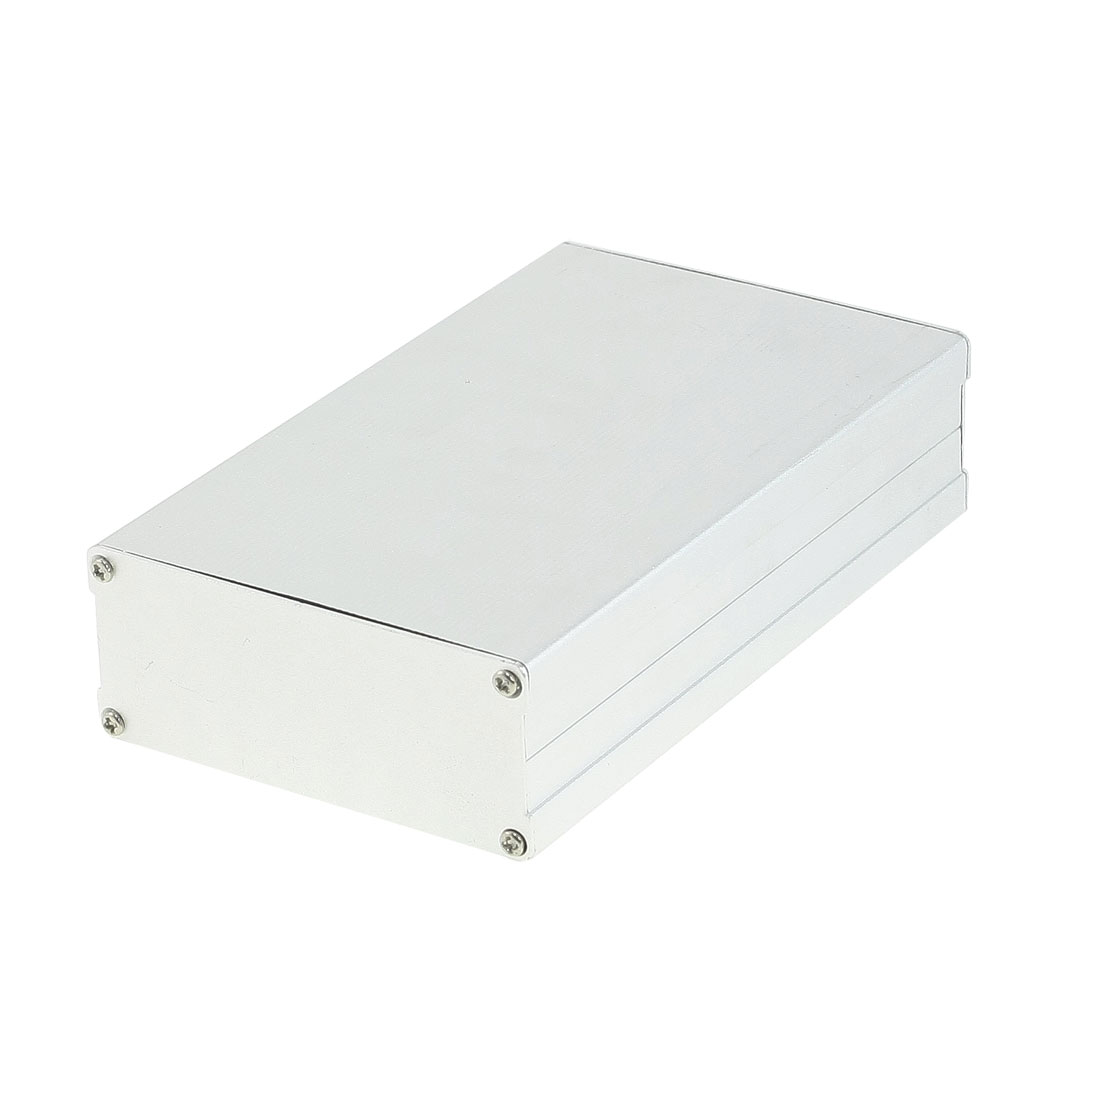 162mm x 97mm x 40mm Aluminum Enclosure Case DIY Junction Box Silver Tone